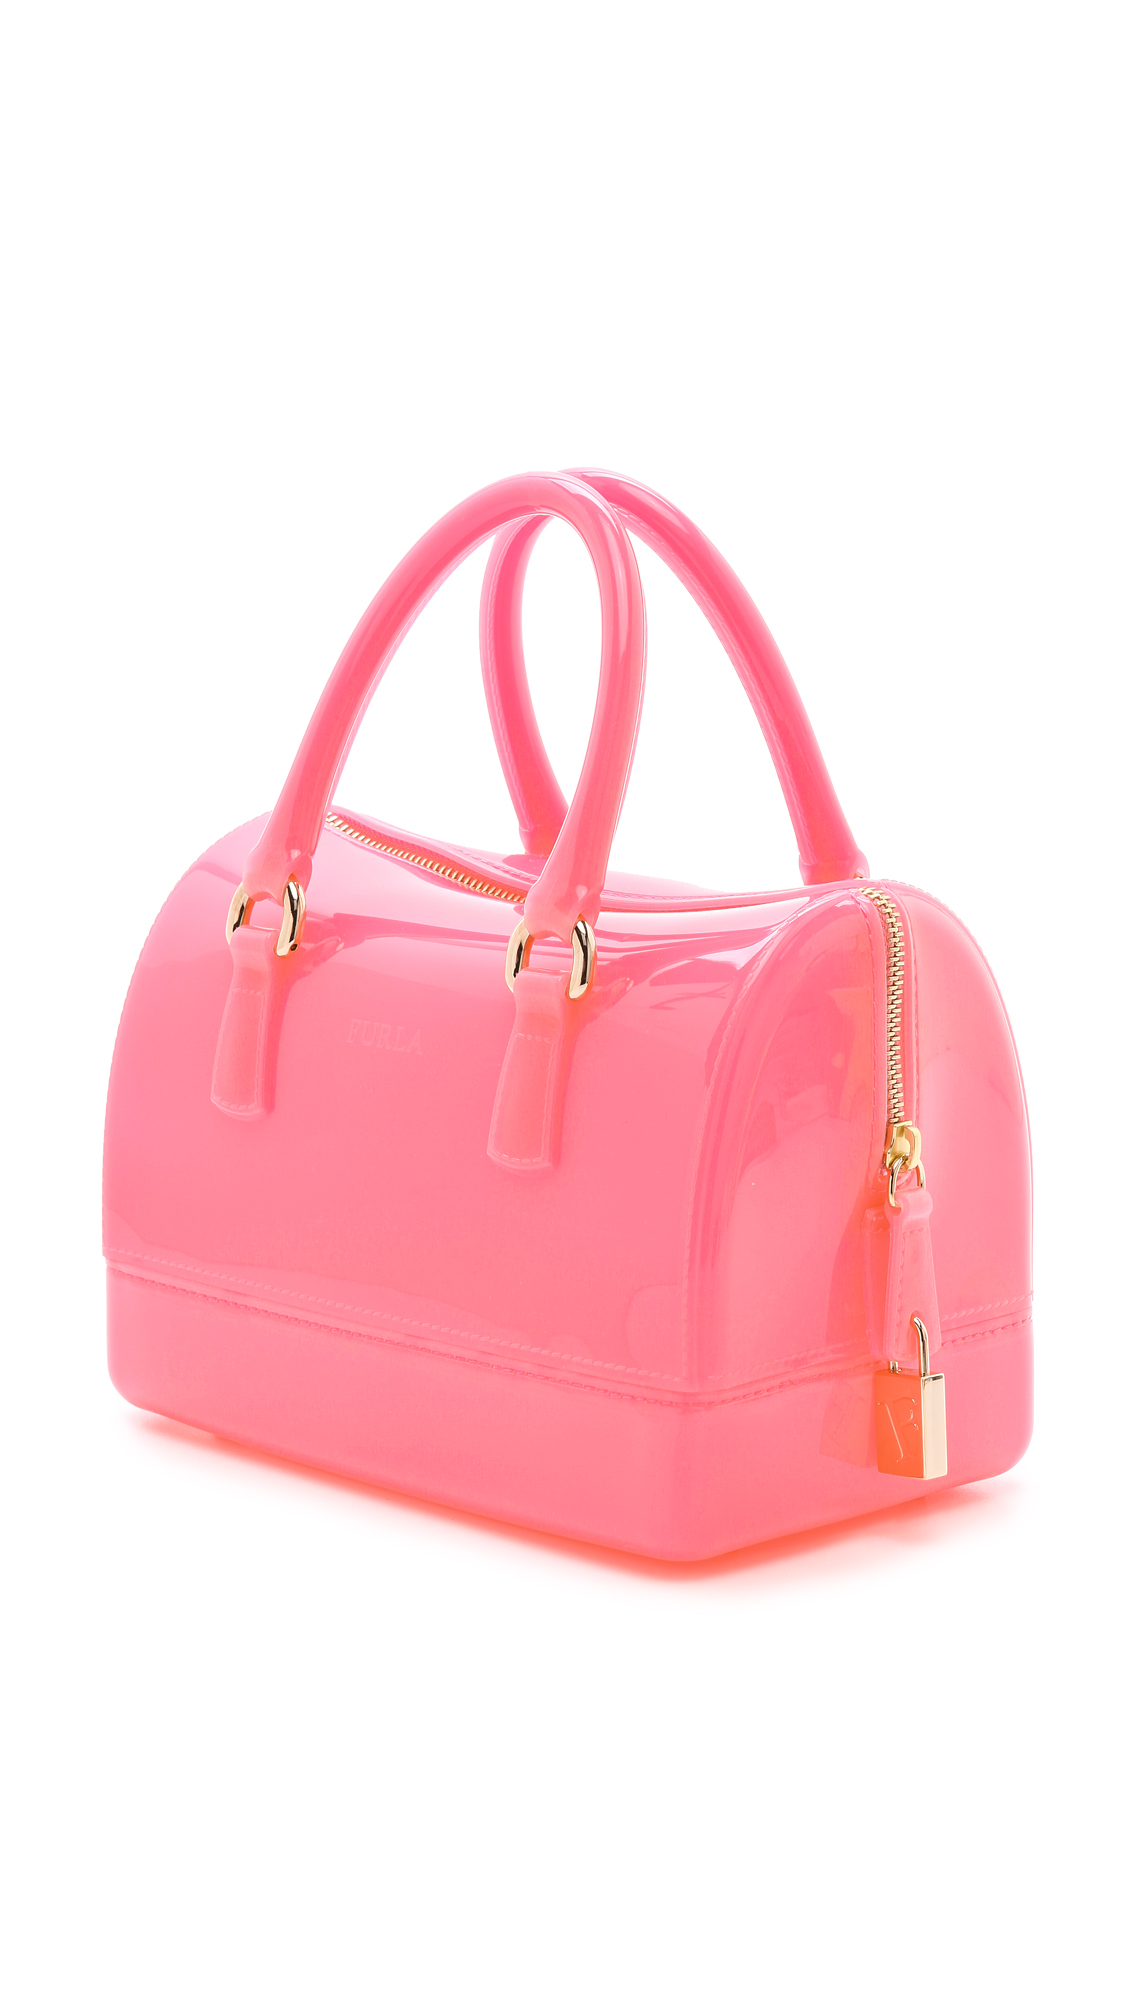 FURLA Candy Cookie Mini-Satchel Handbag的圖片搜尋結果